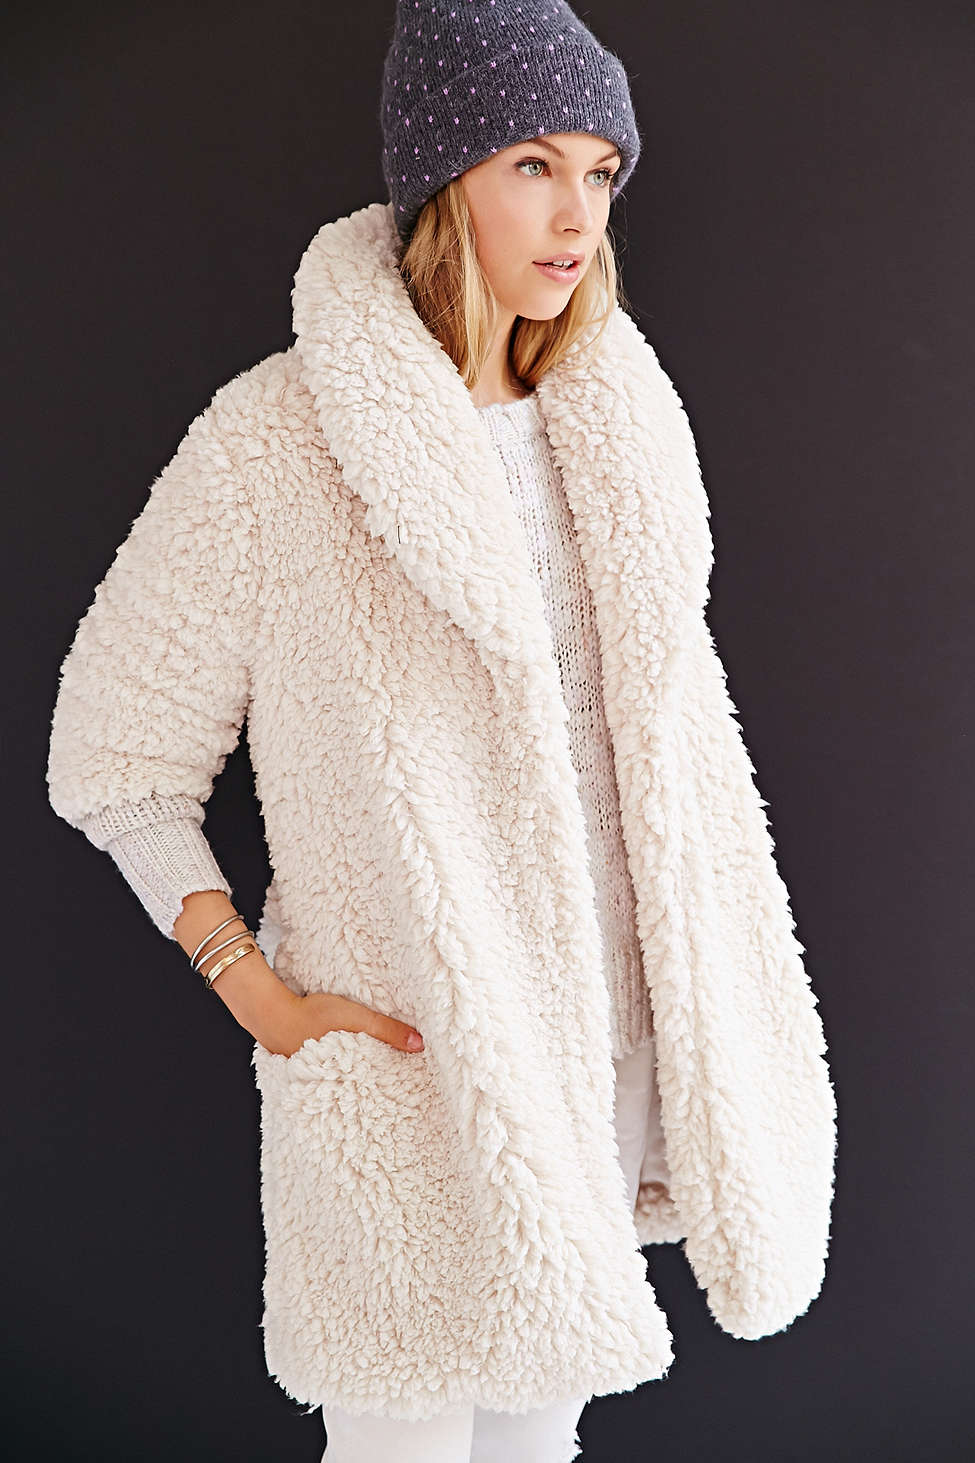 Pins + Needles Sherpa Coat // Acrylic + Polyester >> $149 - 30%